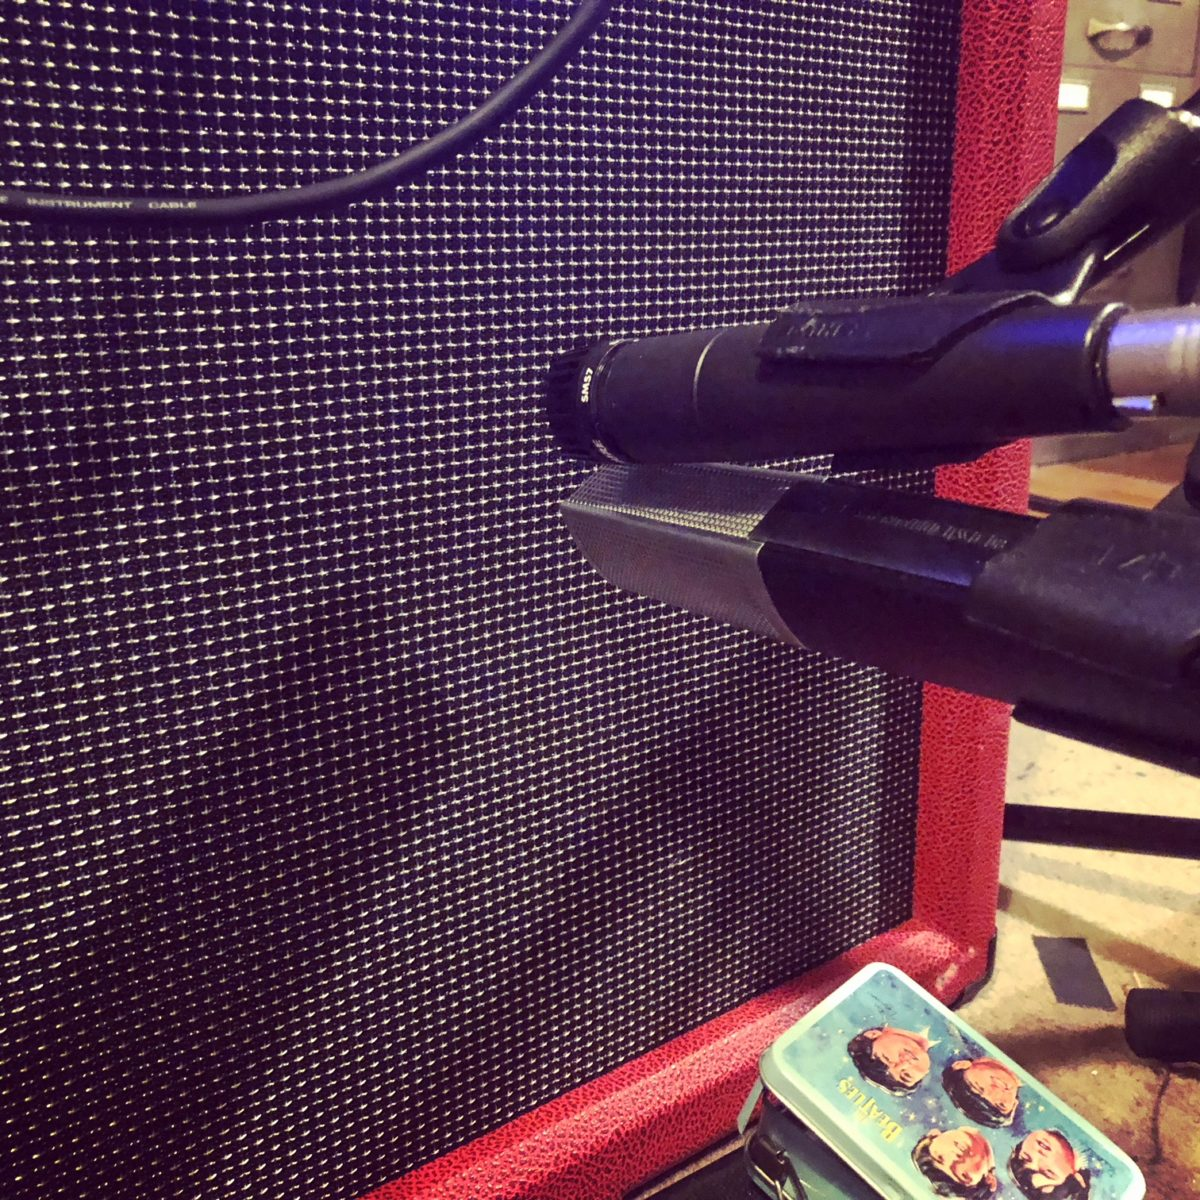 Placement of the SM57 and MD441 on guitar cabinet